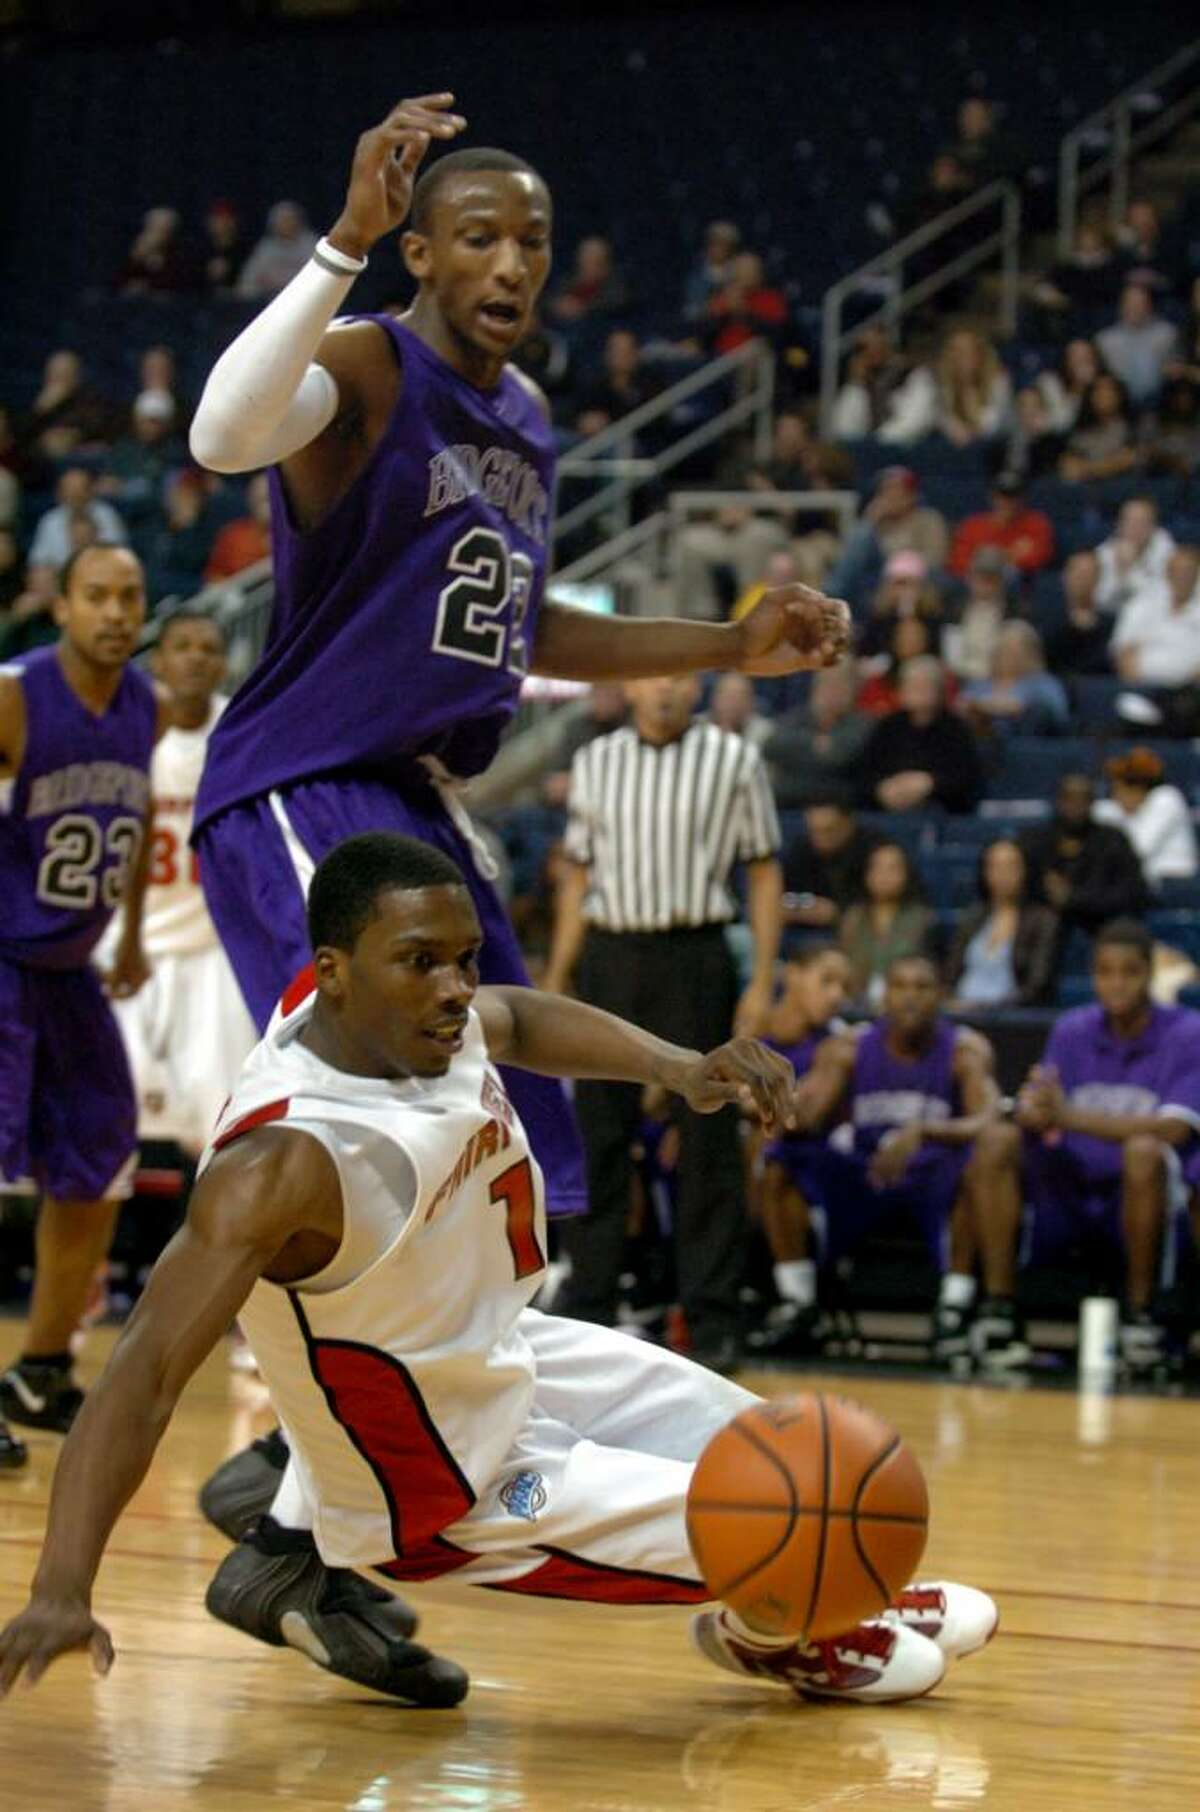 Fairfield University's #1 Jamal Turner looses control of the ball, during basketball action against Bridgeport University at the Arena at Harbor Yard in Bridgeport, Conn. on Thursday Nov. 05, 2009.